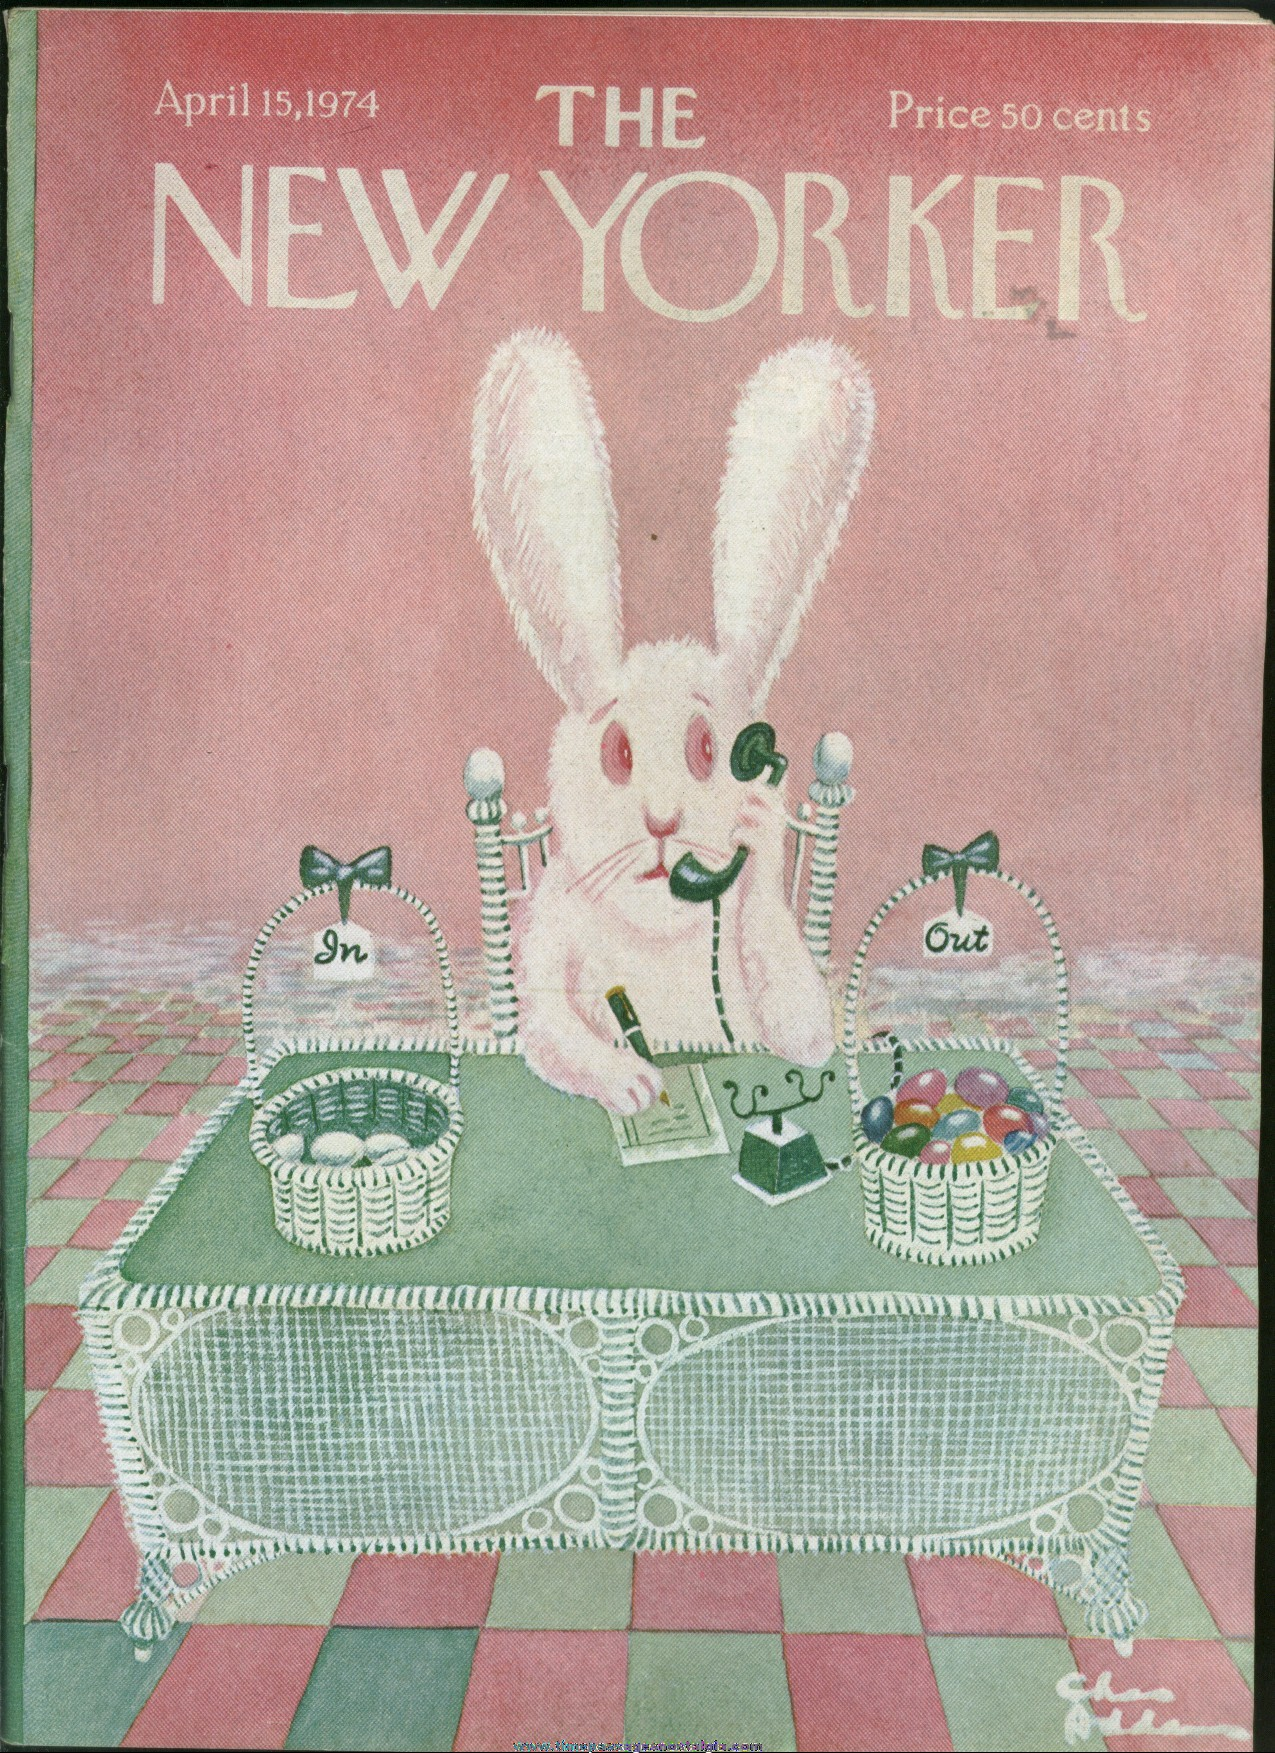 New Yorker Magazine - April 15, 1974 - Cover by Charles (Chas) Addams